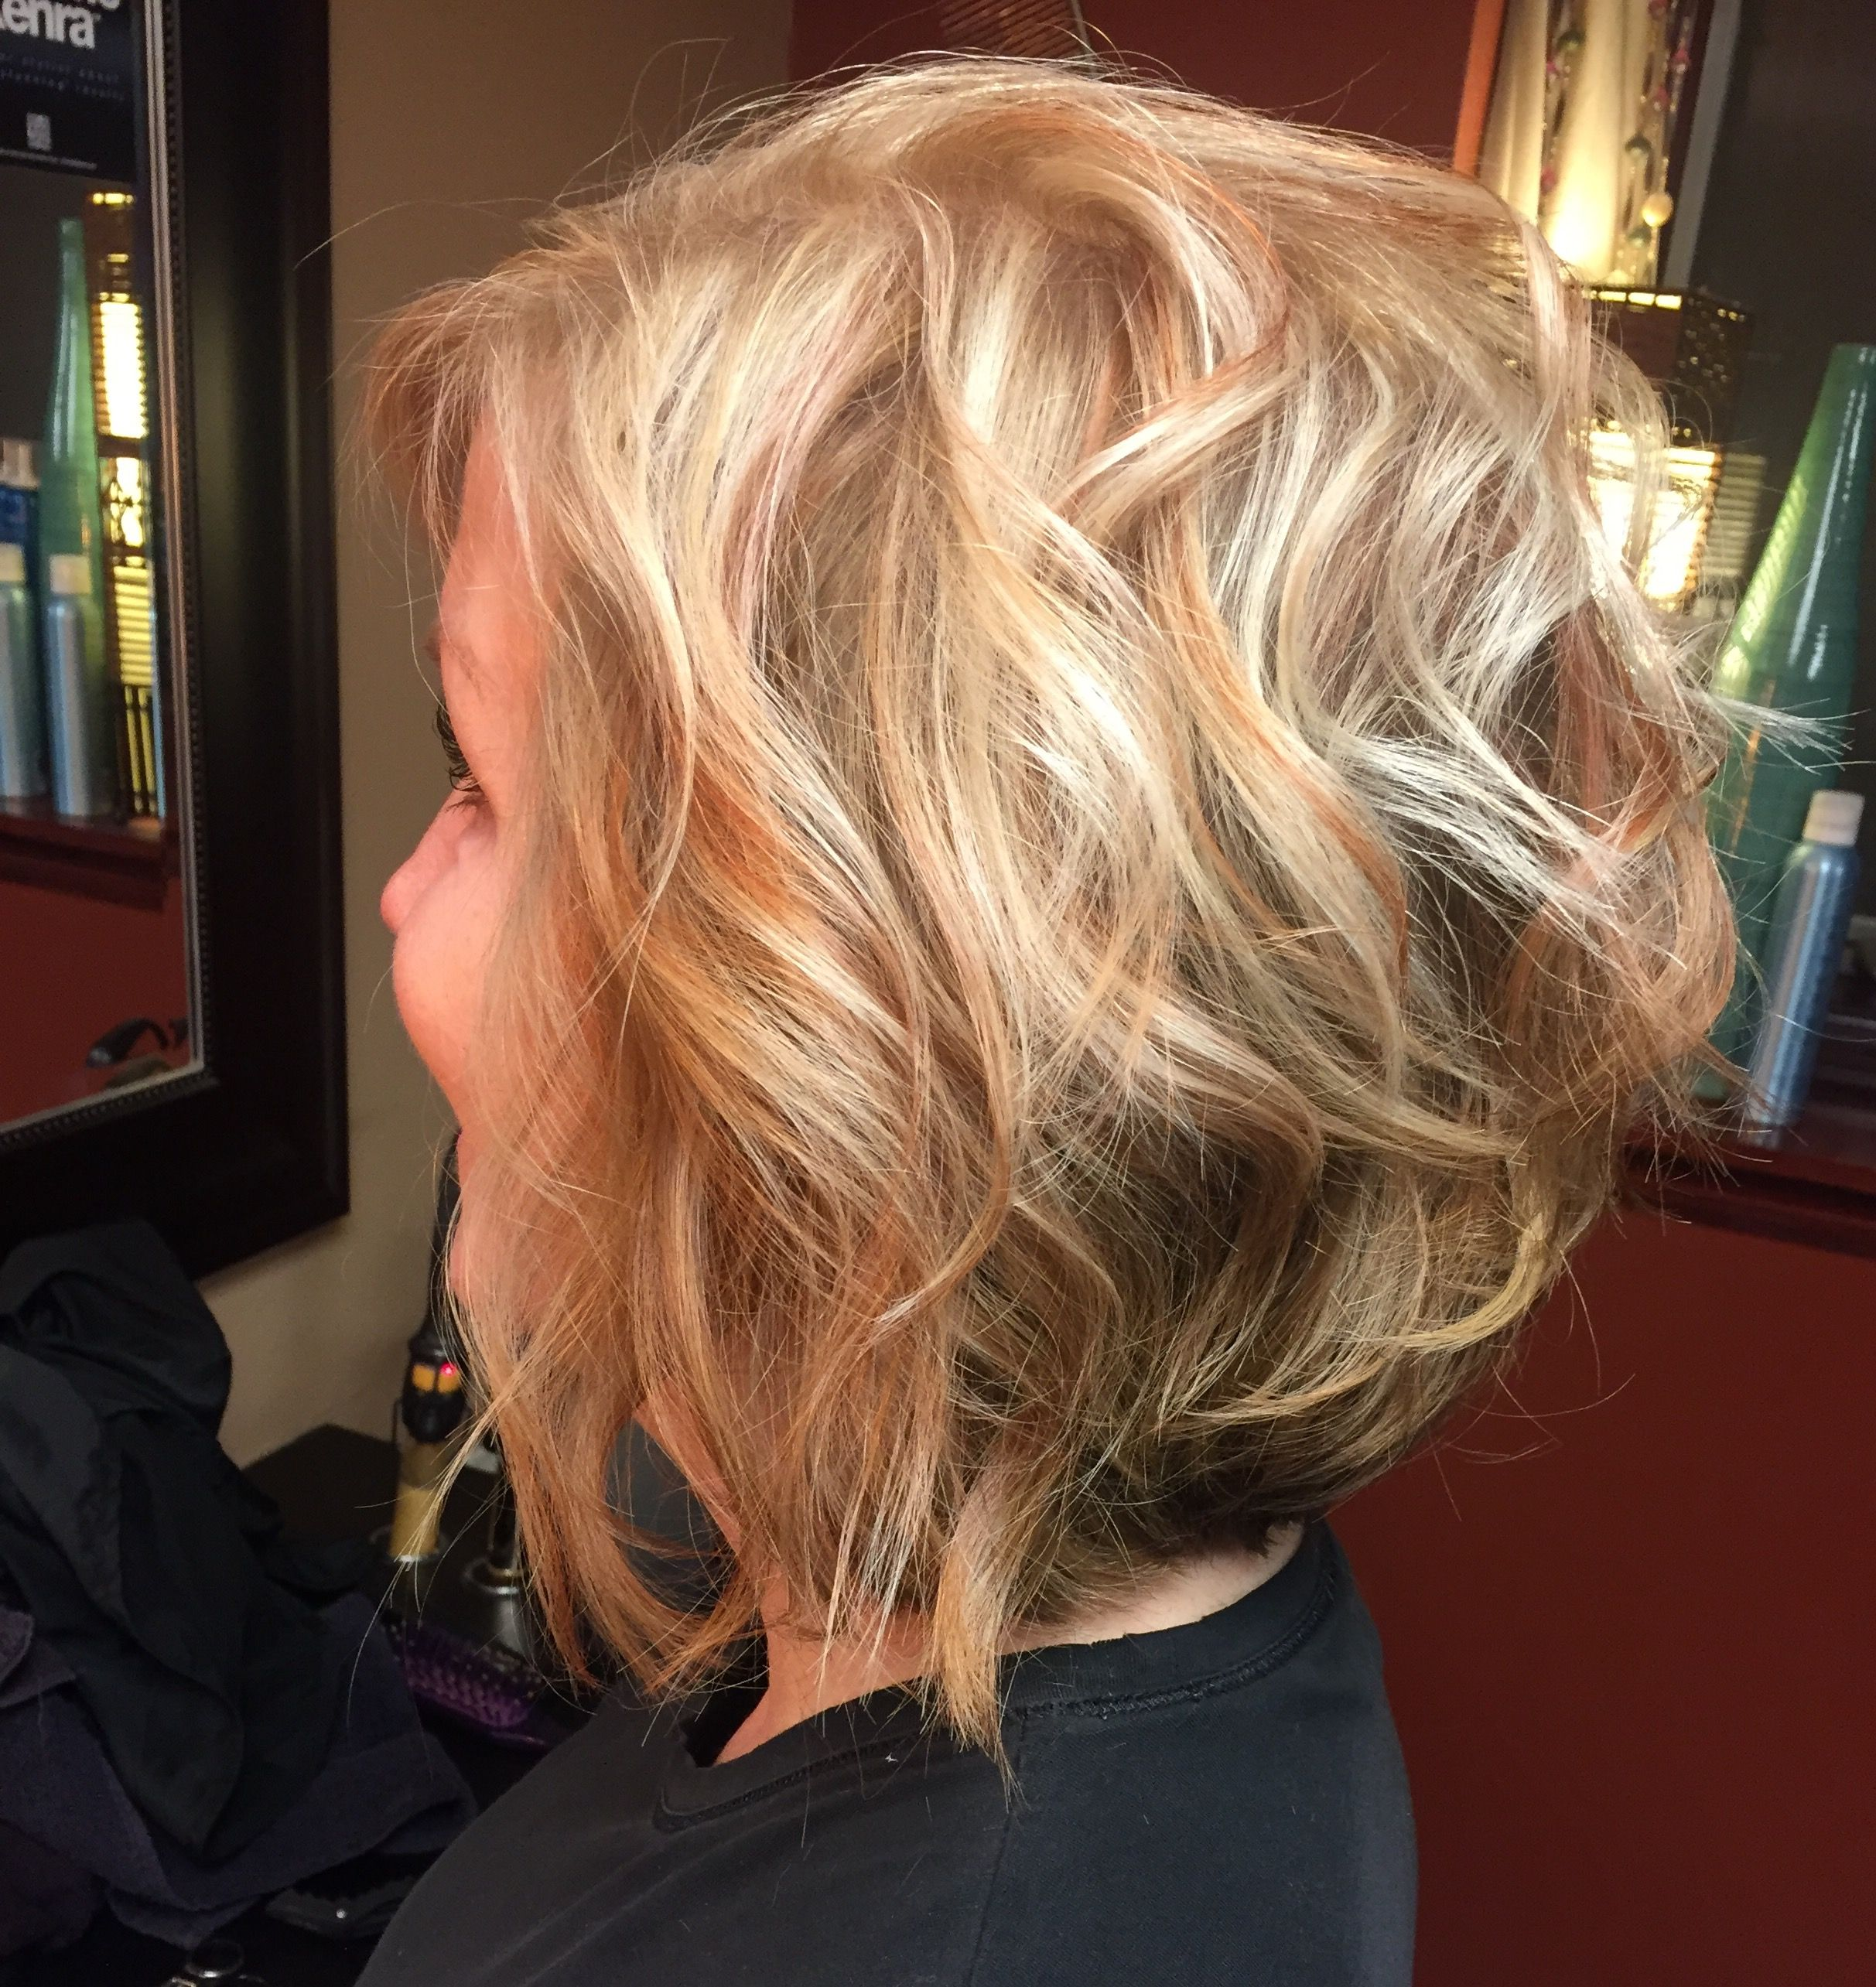 Blonde Inverted Bob With Copper Lowlights Blonde Hair With Copper Lowlights Blonde Highlights Bob Blonde Inverted Bob